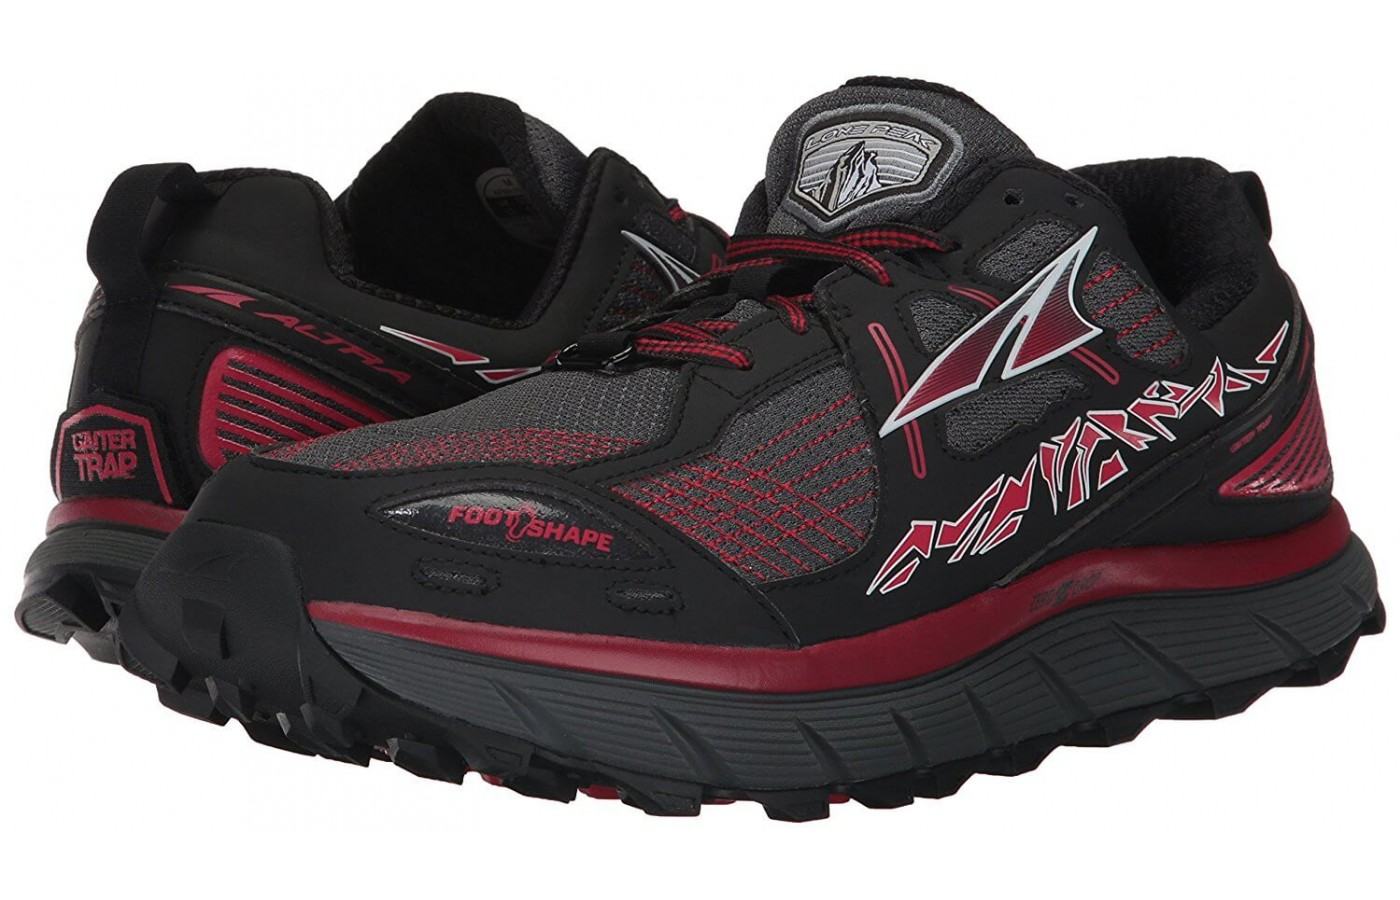 The Altra Lone Peak 3.5 features an A-Bound midsole